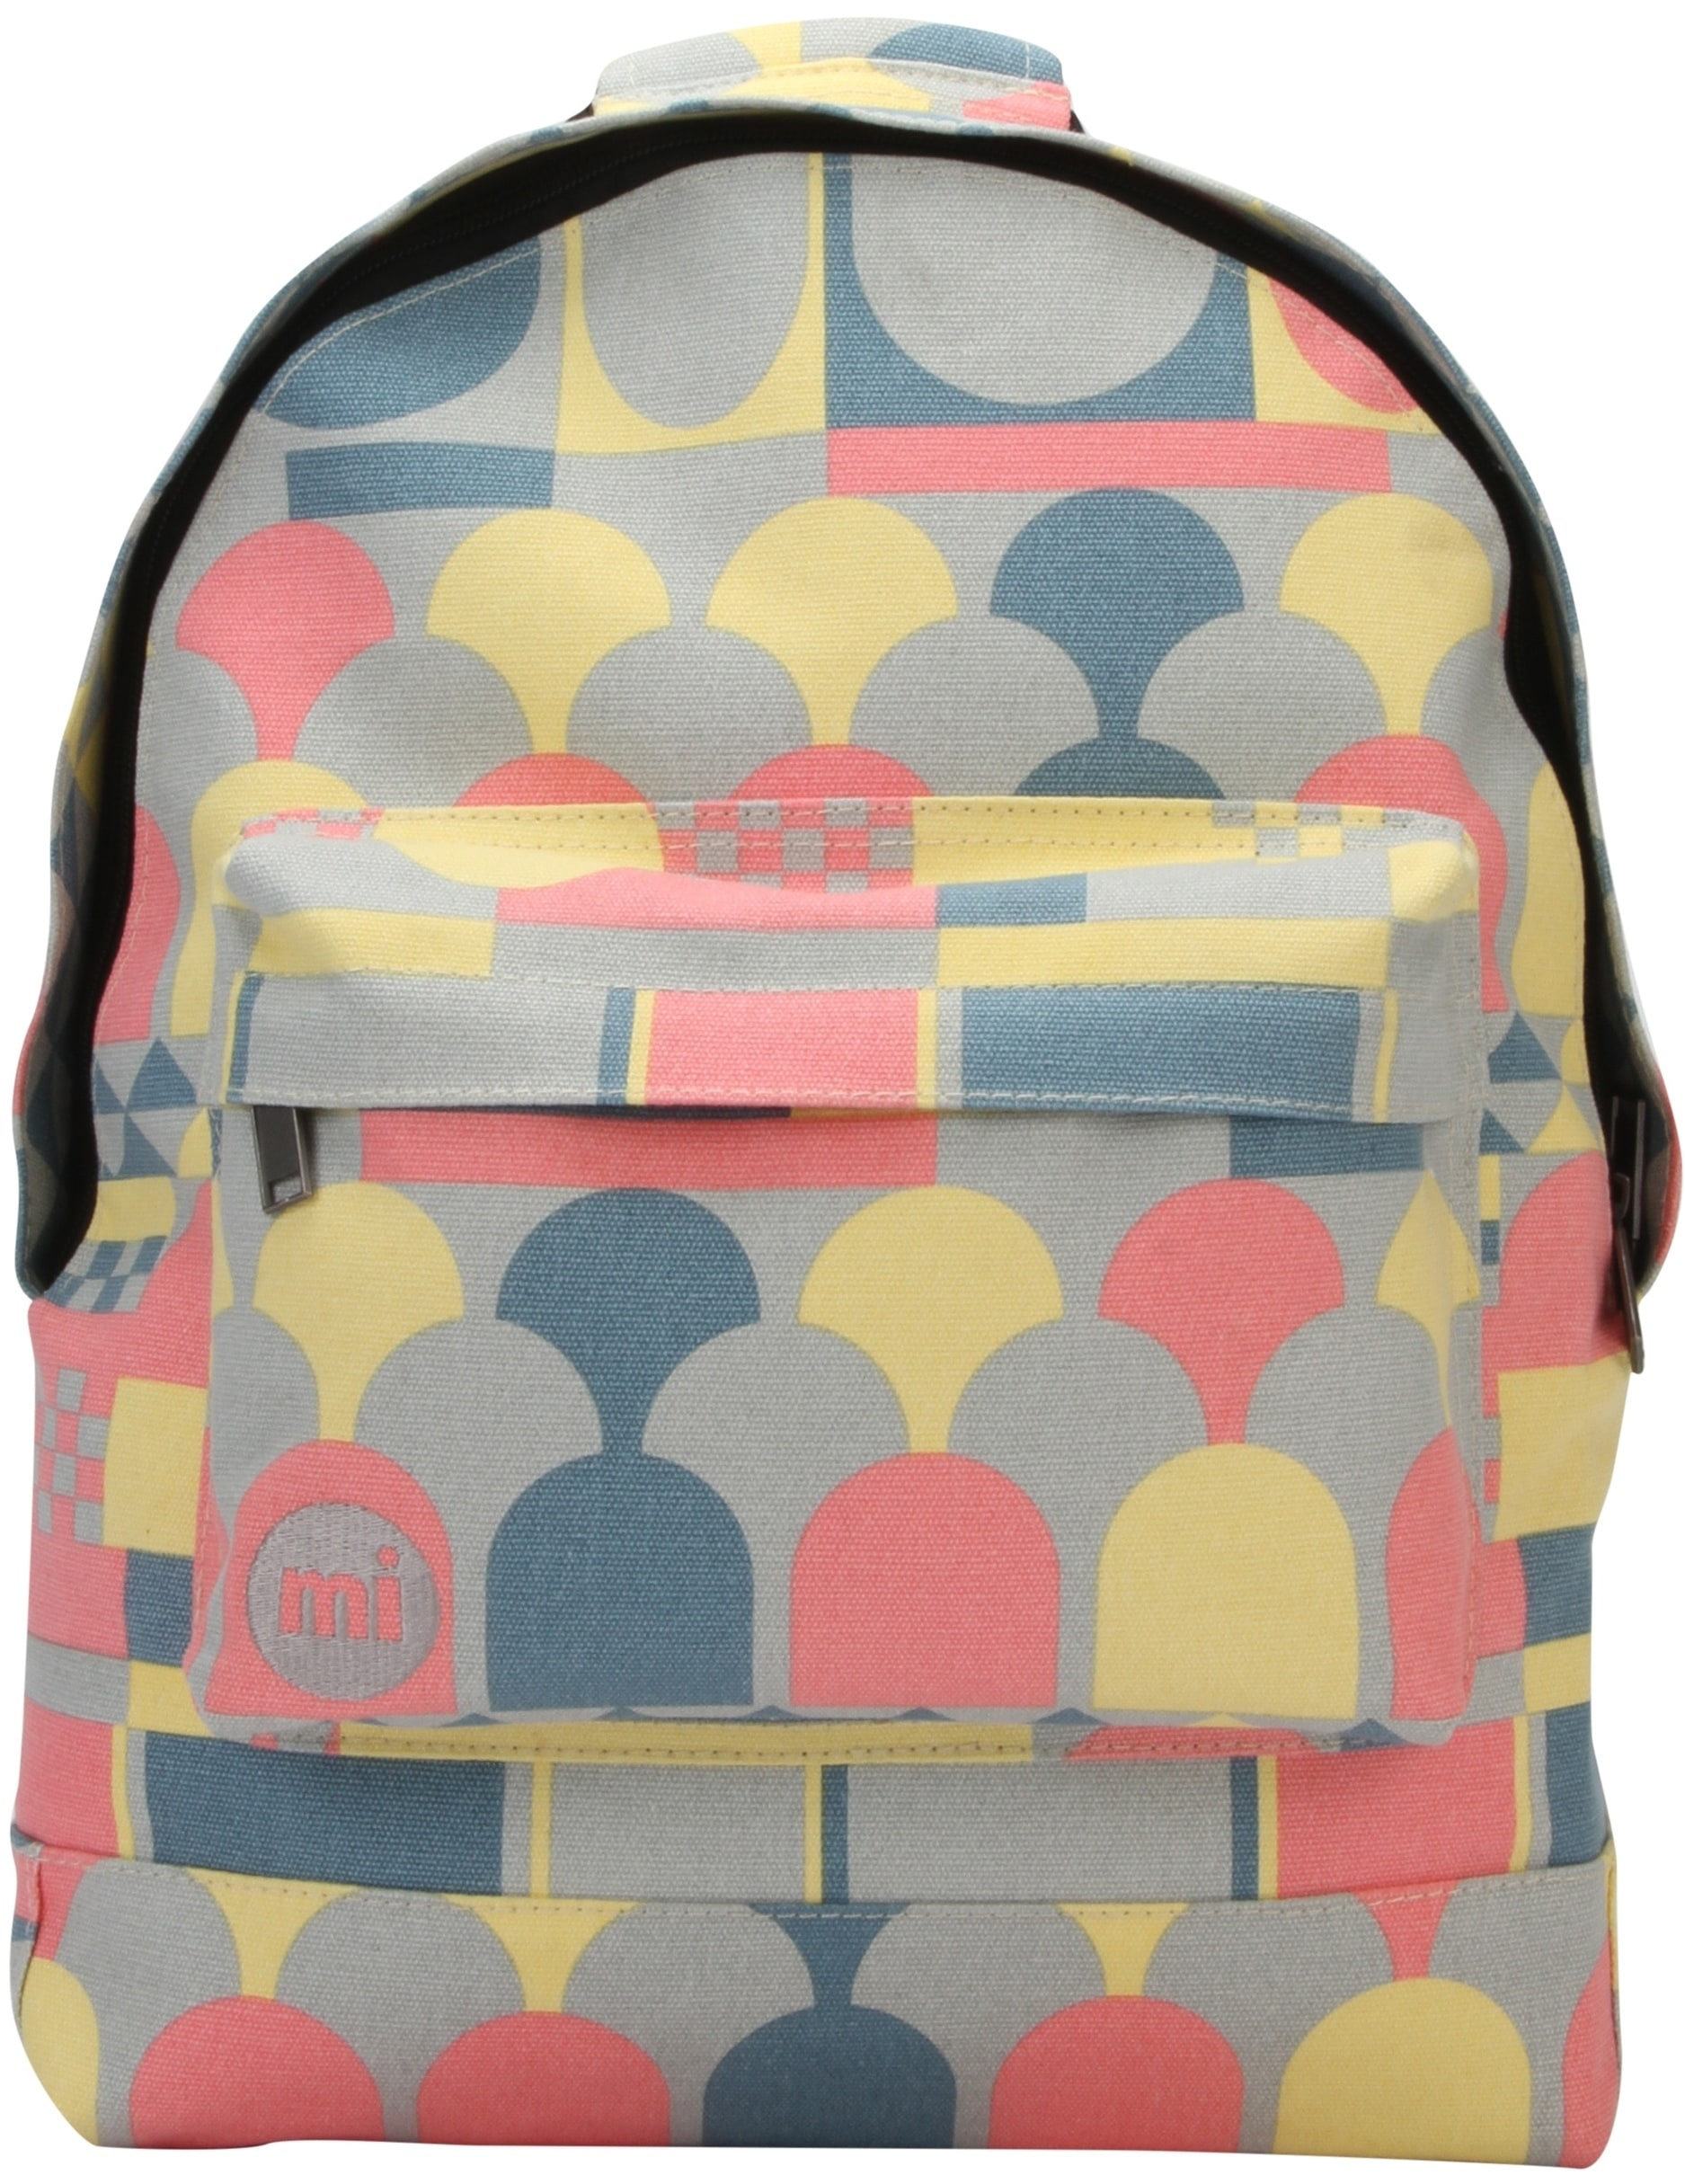 MiPac Scandy Backpack  GreyMulti